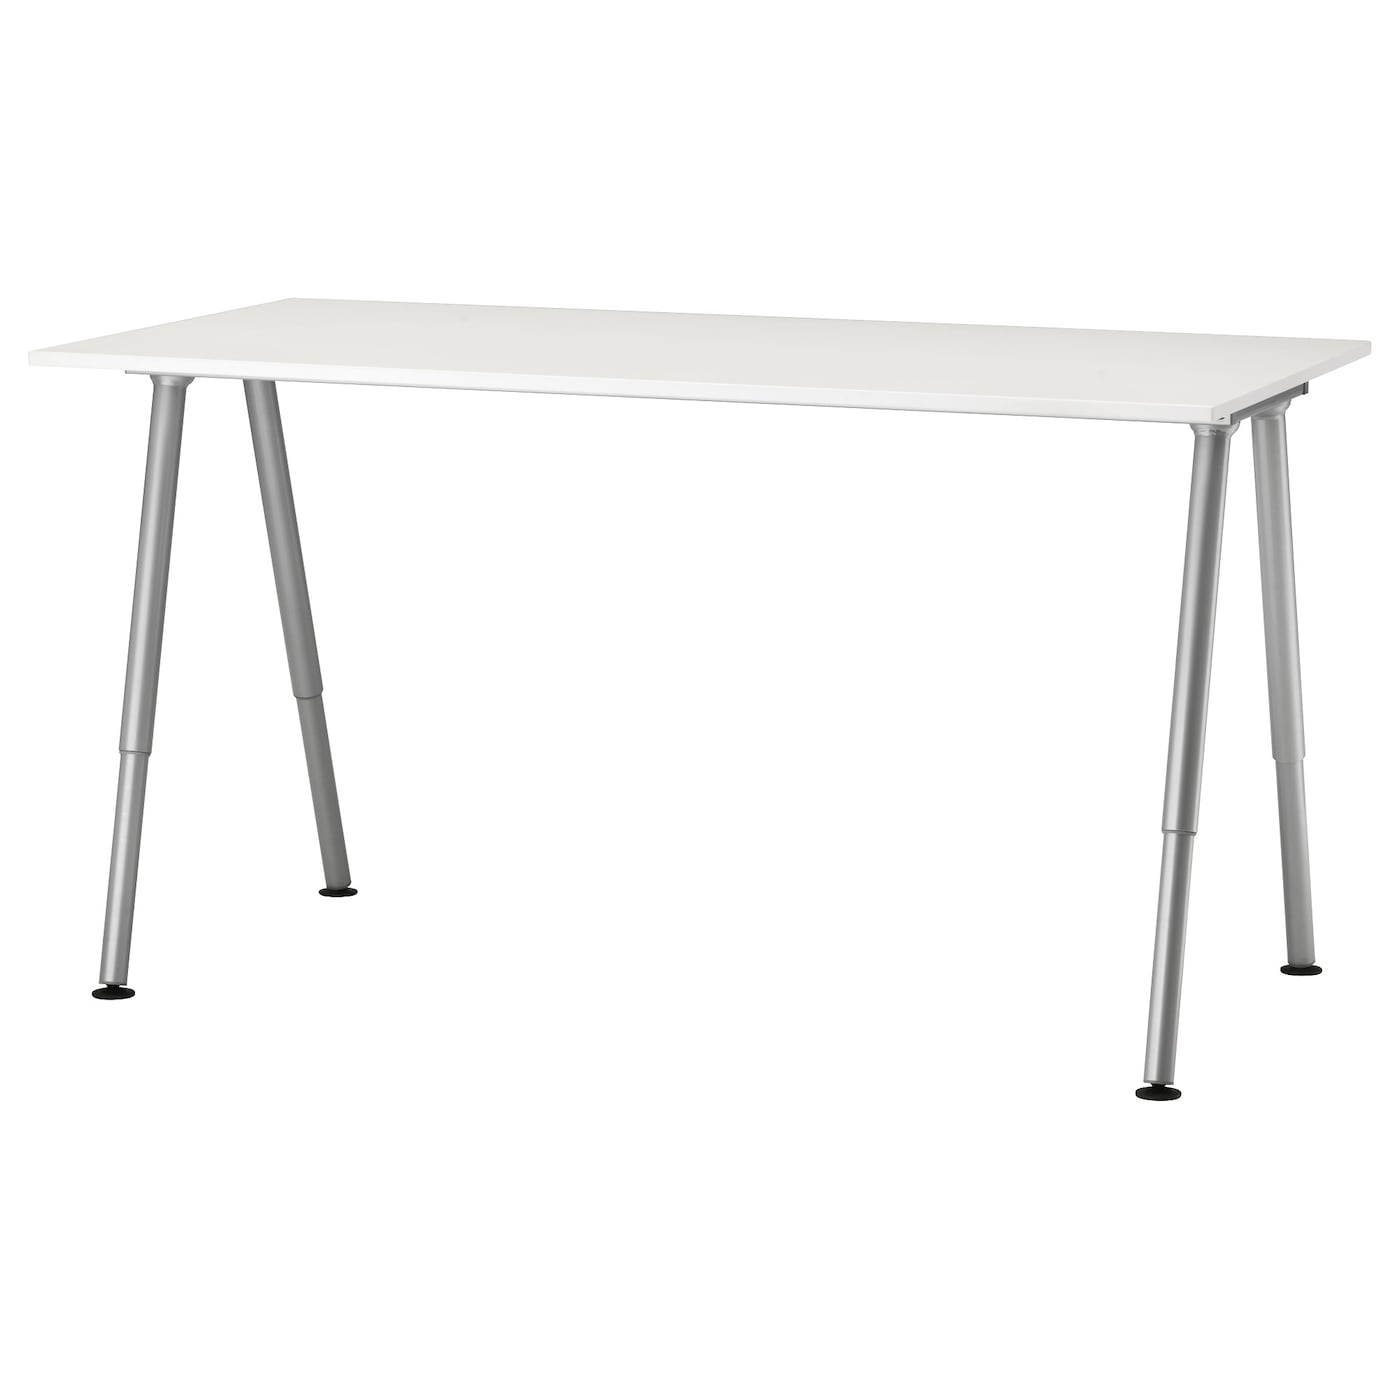 Eckschreibtisch ikea galant  Office Furniture - Office Desks & Tables - IKEA